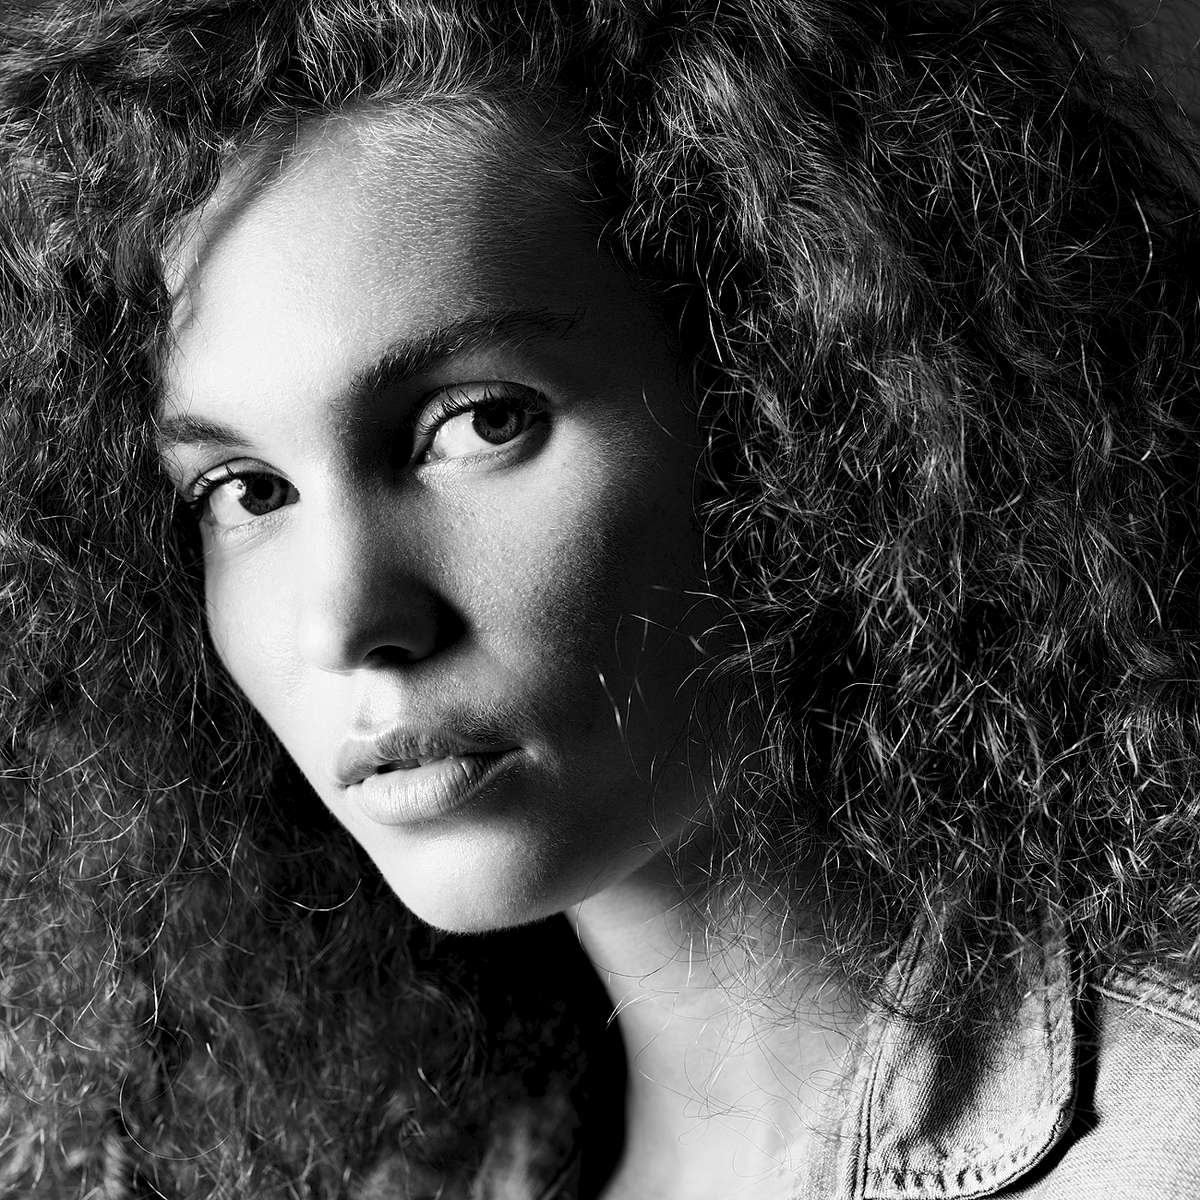 A portrait headshot of model Sophie captured as a black and white image